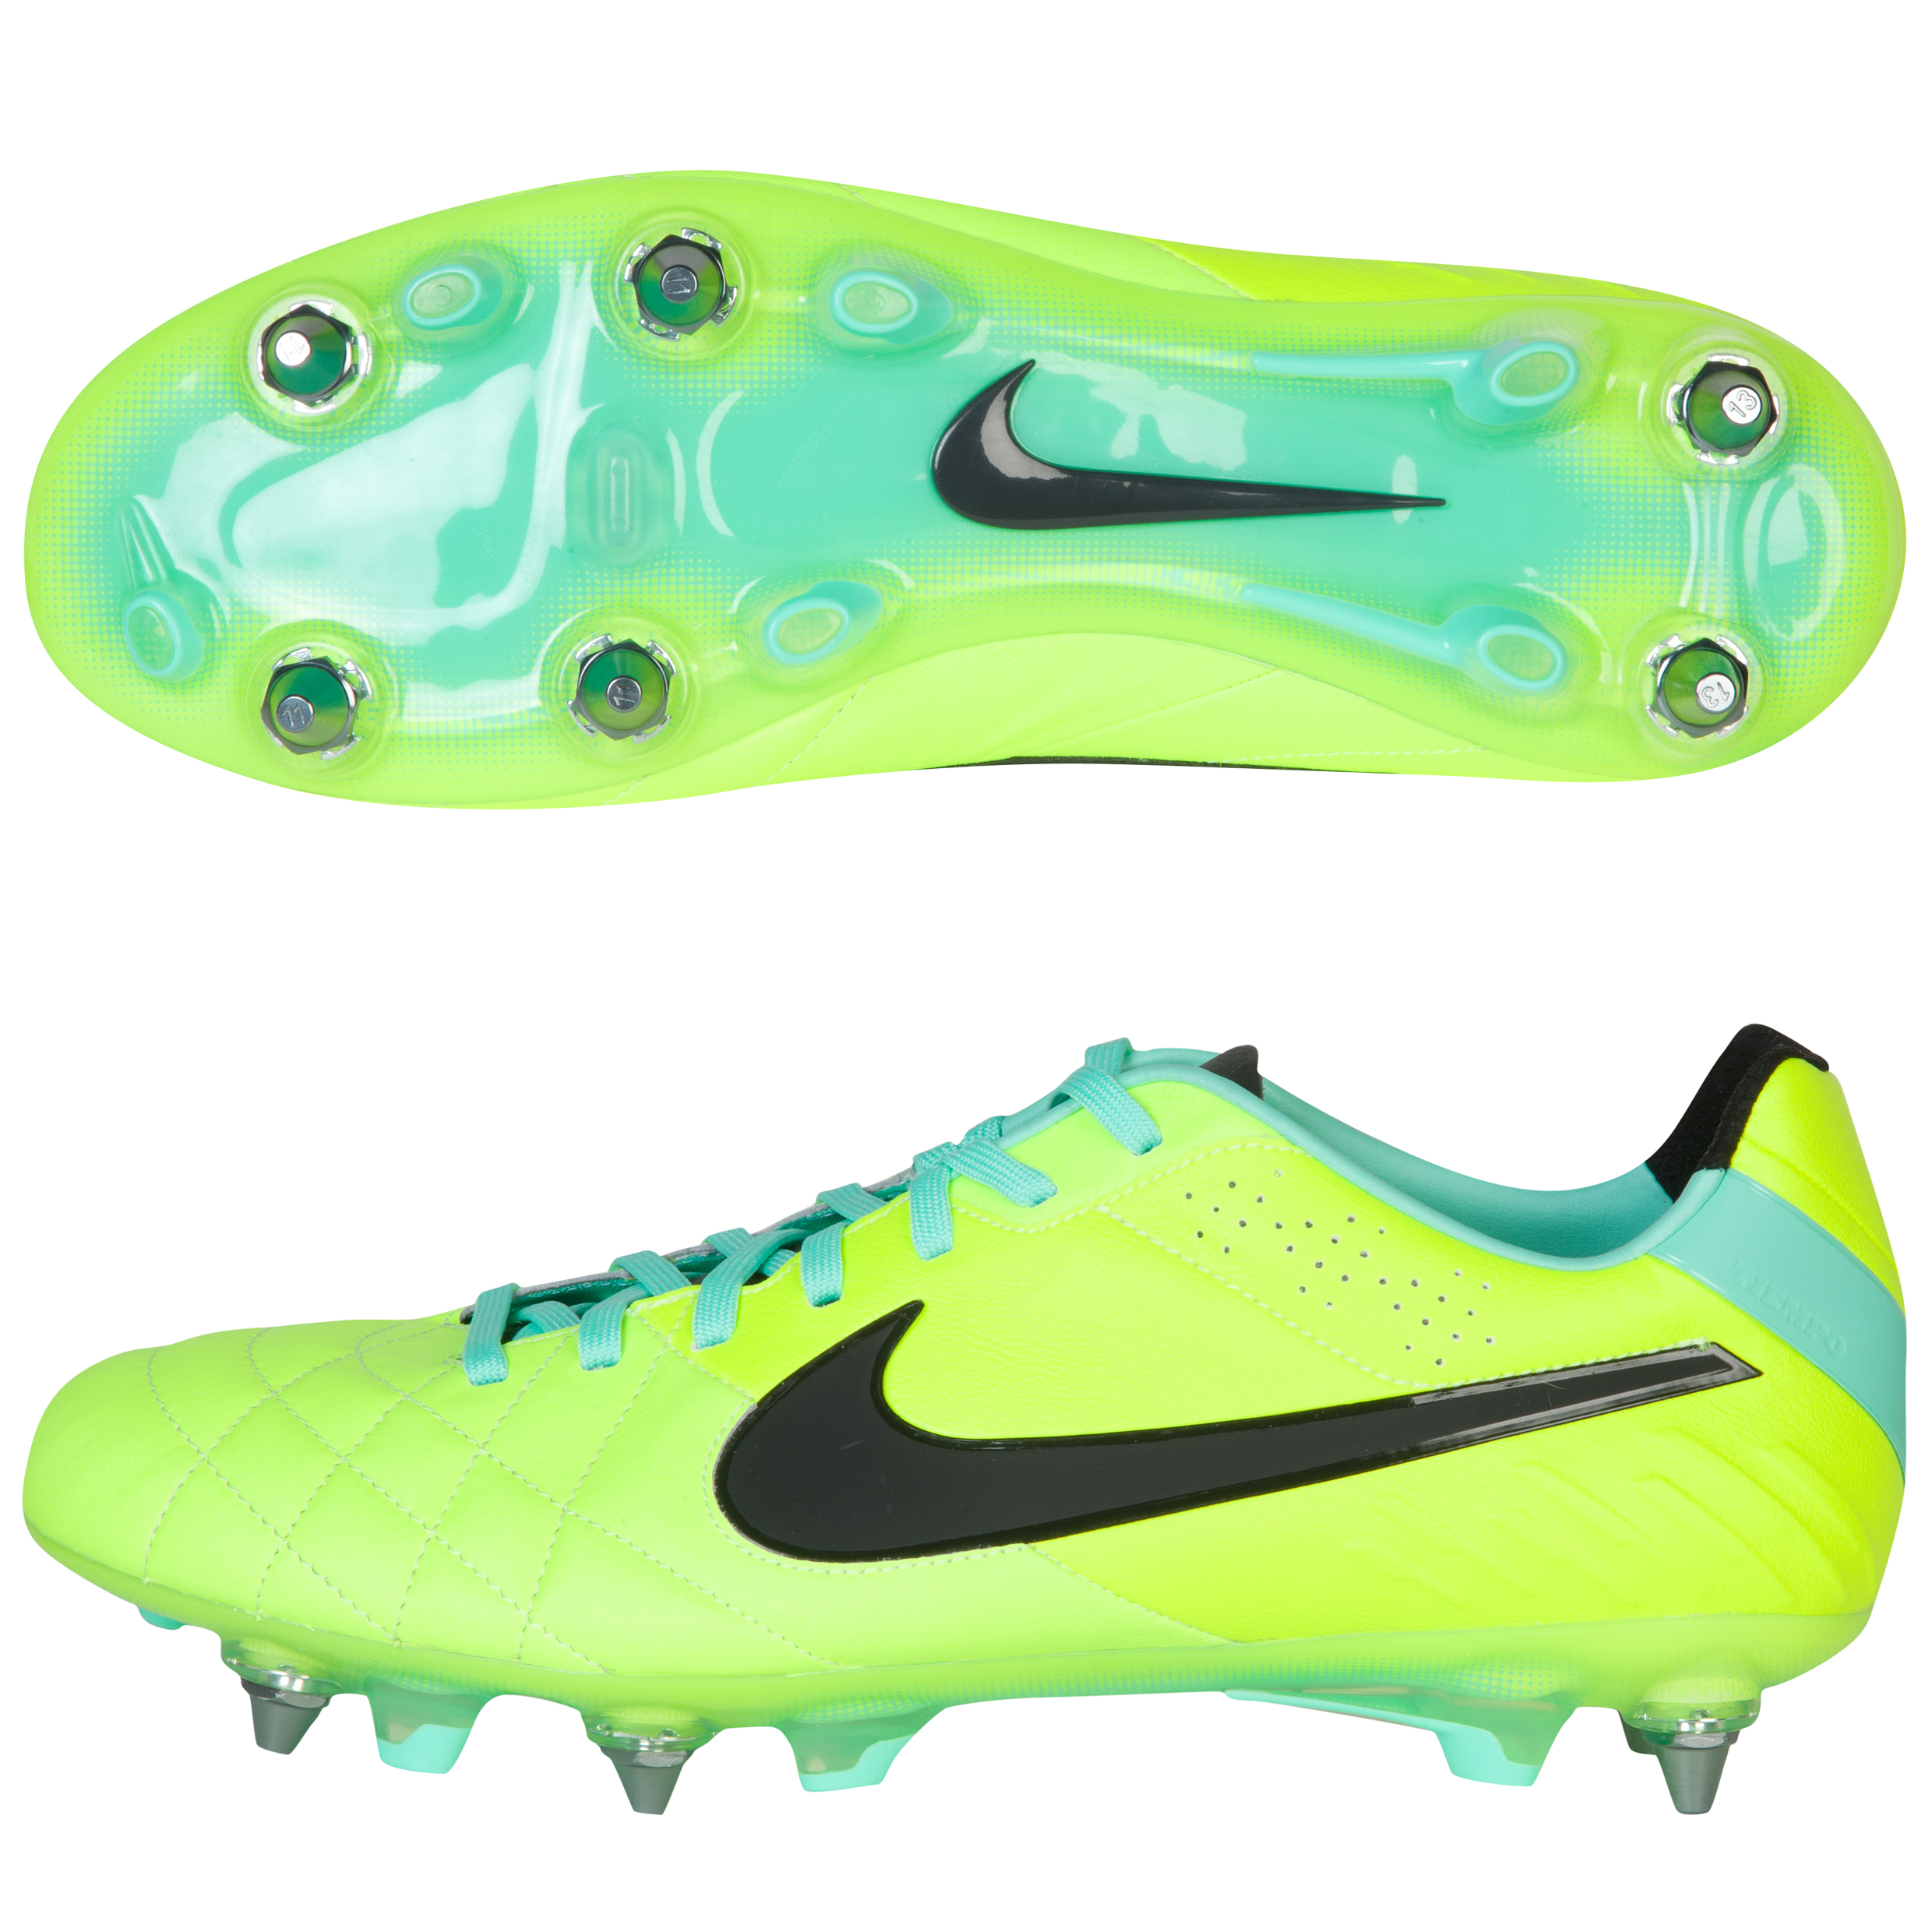 Nike Tiempo Legend Iv Soft Ground-Pro Football Boots - Volt/Black/Green Glow Lt Green